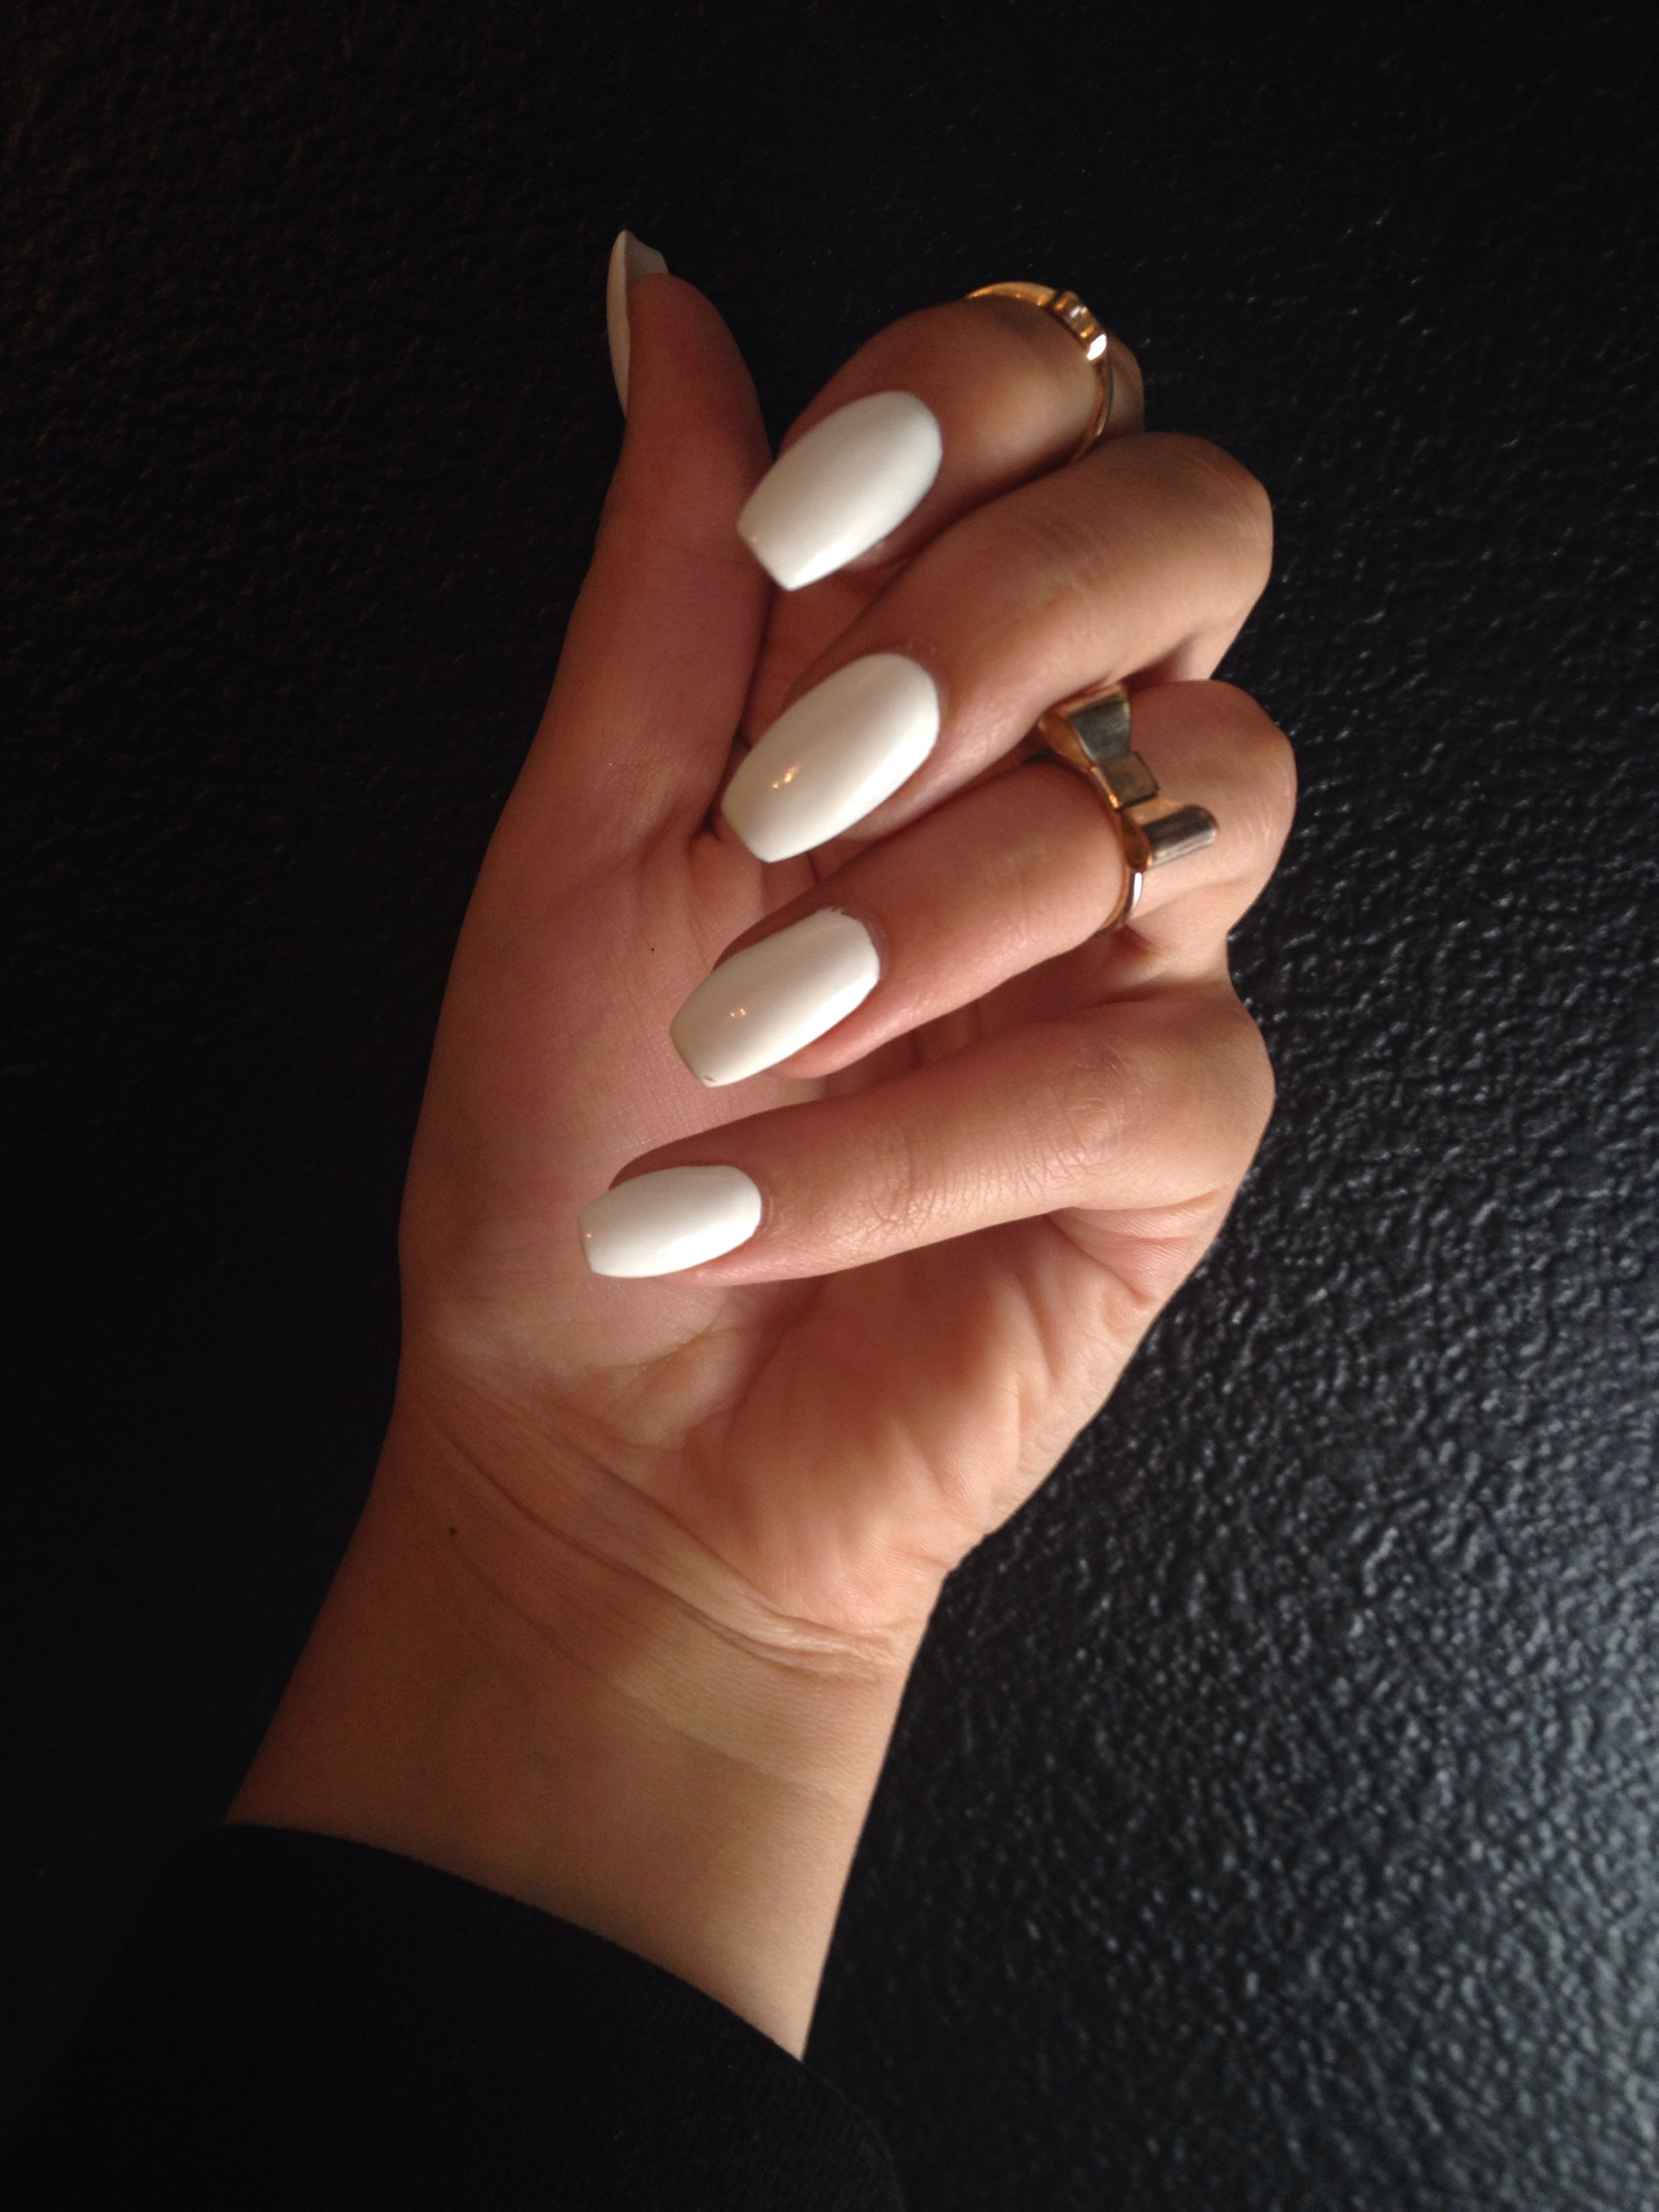 White Short Coffin Shaped Nails Rounded Acrylic Nails Coffin Shape Nails Acrylic Nails Coffin Short